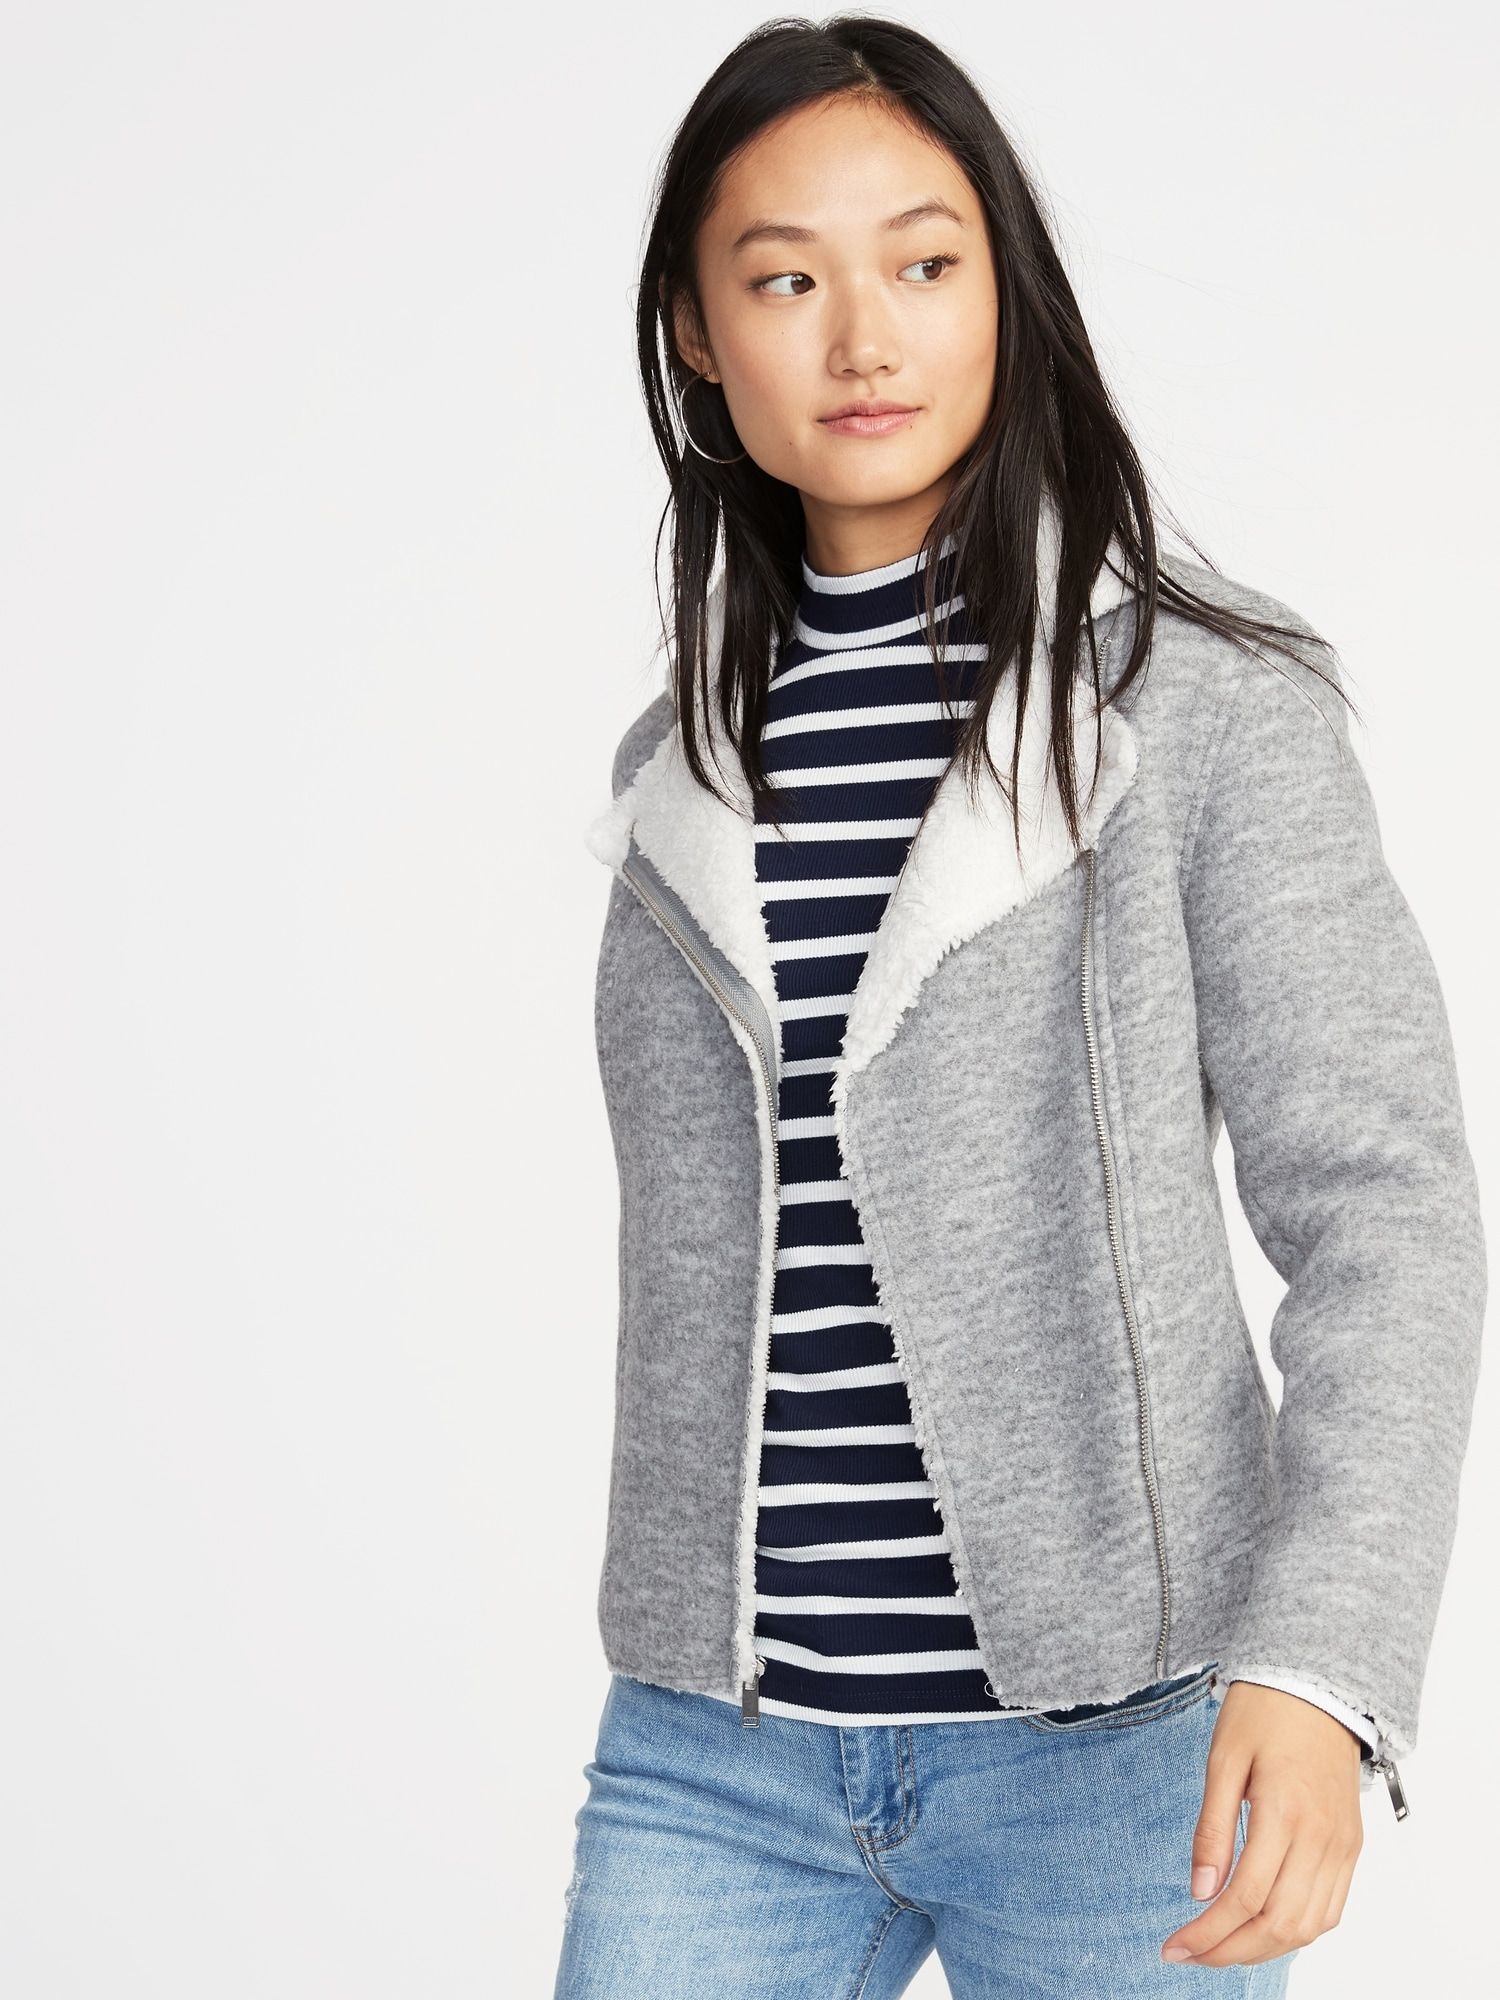 SherpaLined Moto Jacket for Women Old Navy Jackets